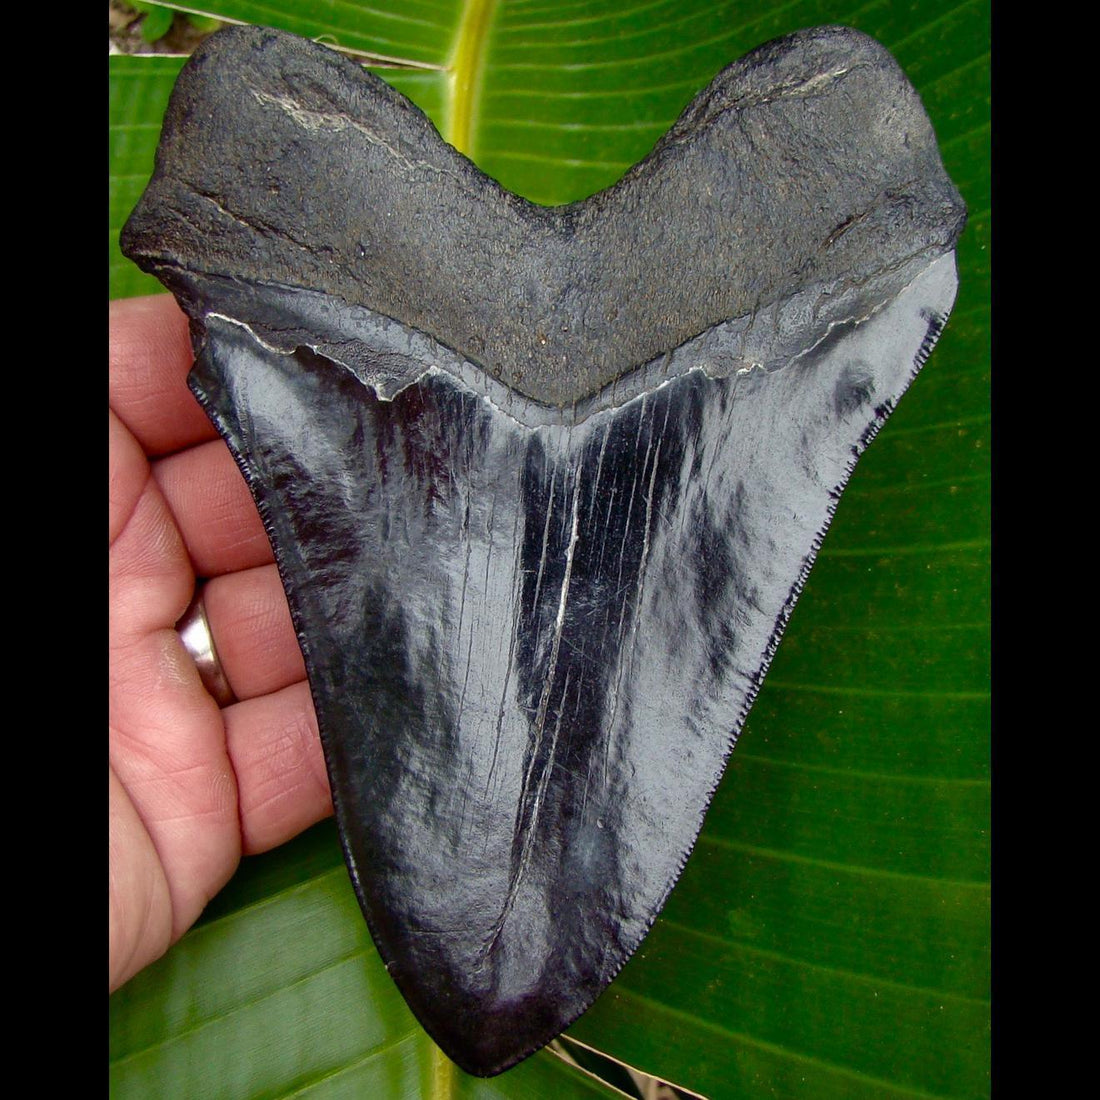 Megalodon Tooth Copy of 5 & 5/8 in.  South Carolina Megalodon Shark Tooth